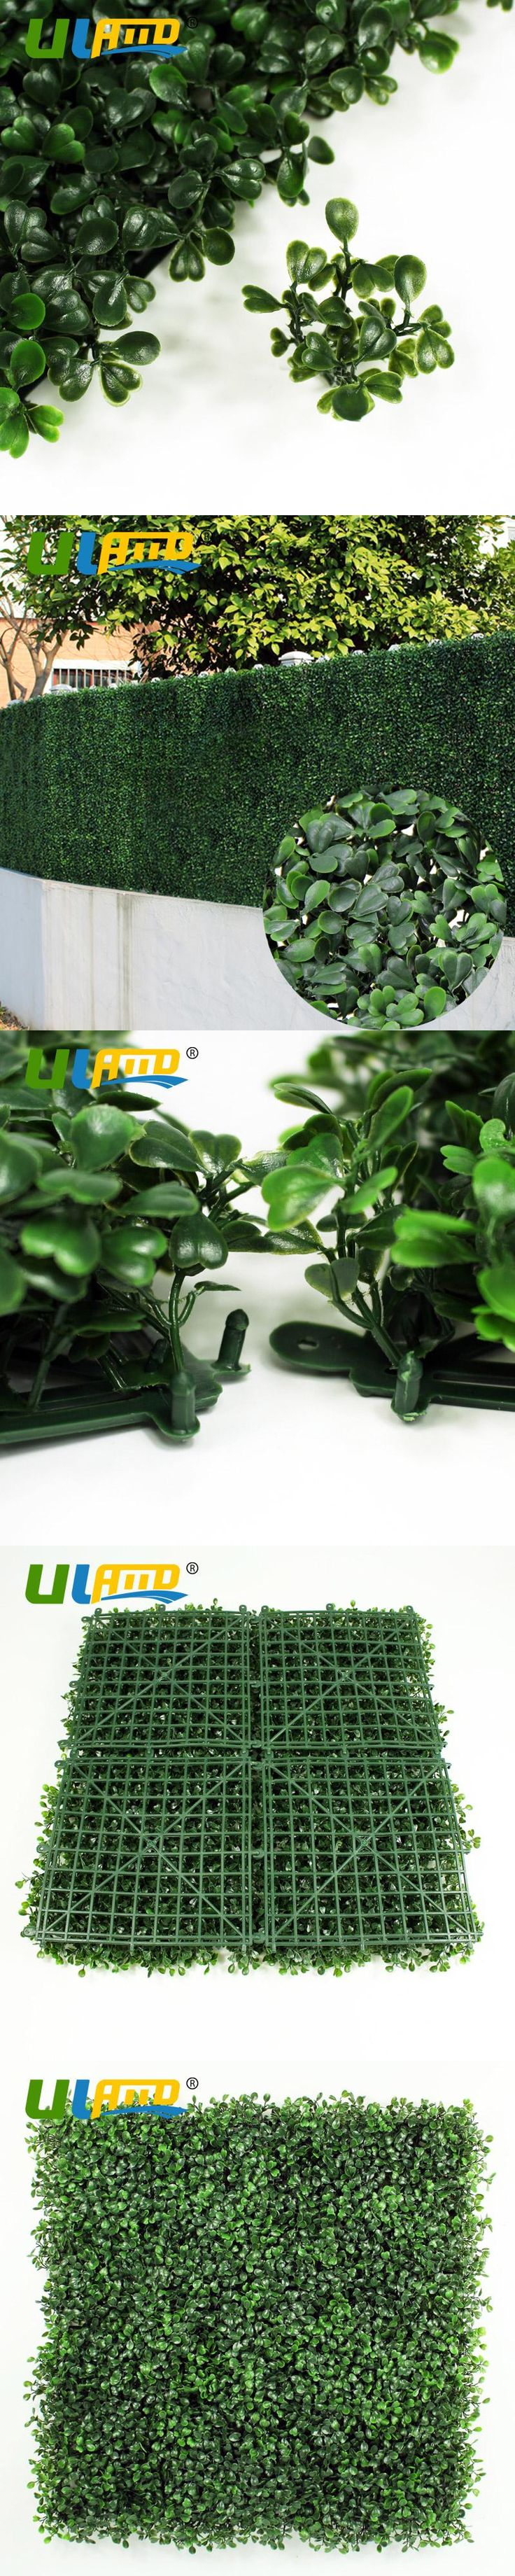 ULAND Artificial Grass Boxwood Hedge Balcony Panels Plastic Garden Fence  Greenery 12 pcs 50x50cm/pc